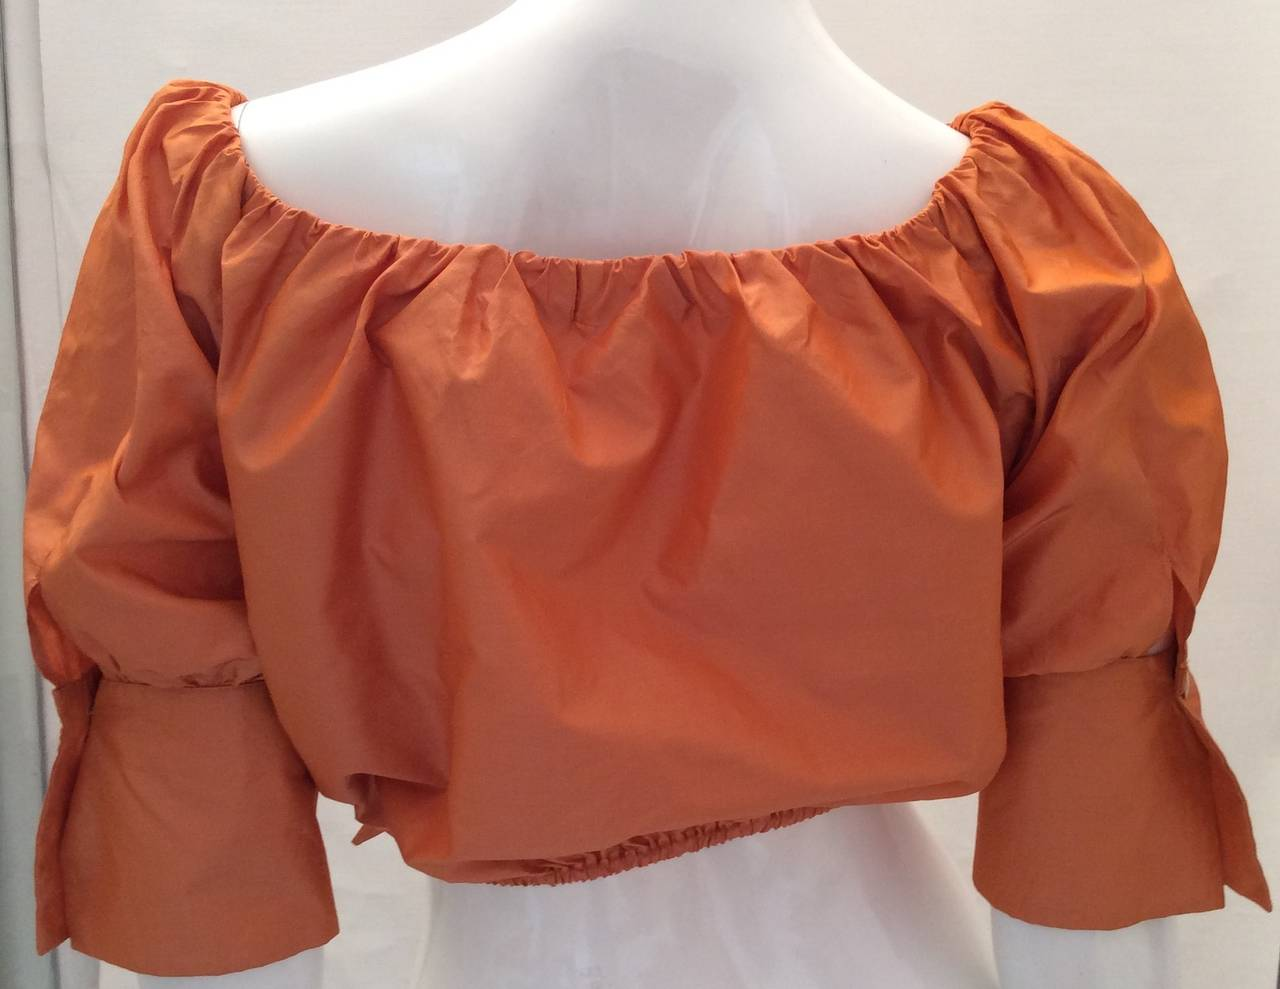 This beautiful orange 100% silk Max Mara evening top has elastic around the top which makes it as beautiful off the shoulder as it is on the shoulder. It has a front tie closure and above the front tie enclosure is a 4.5 inch opening which you don't